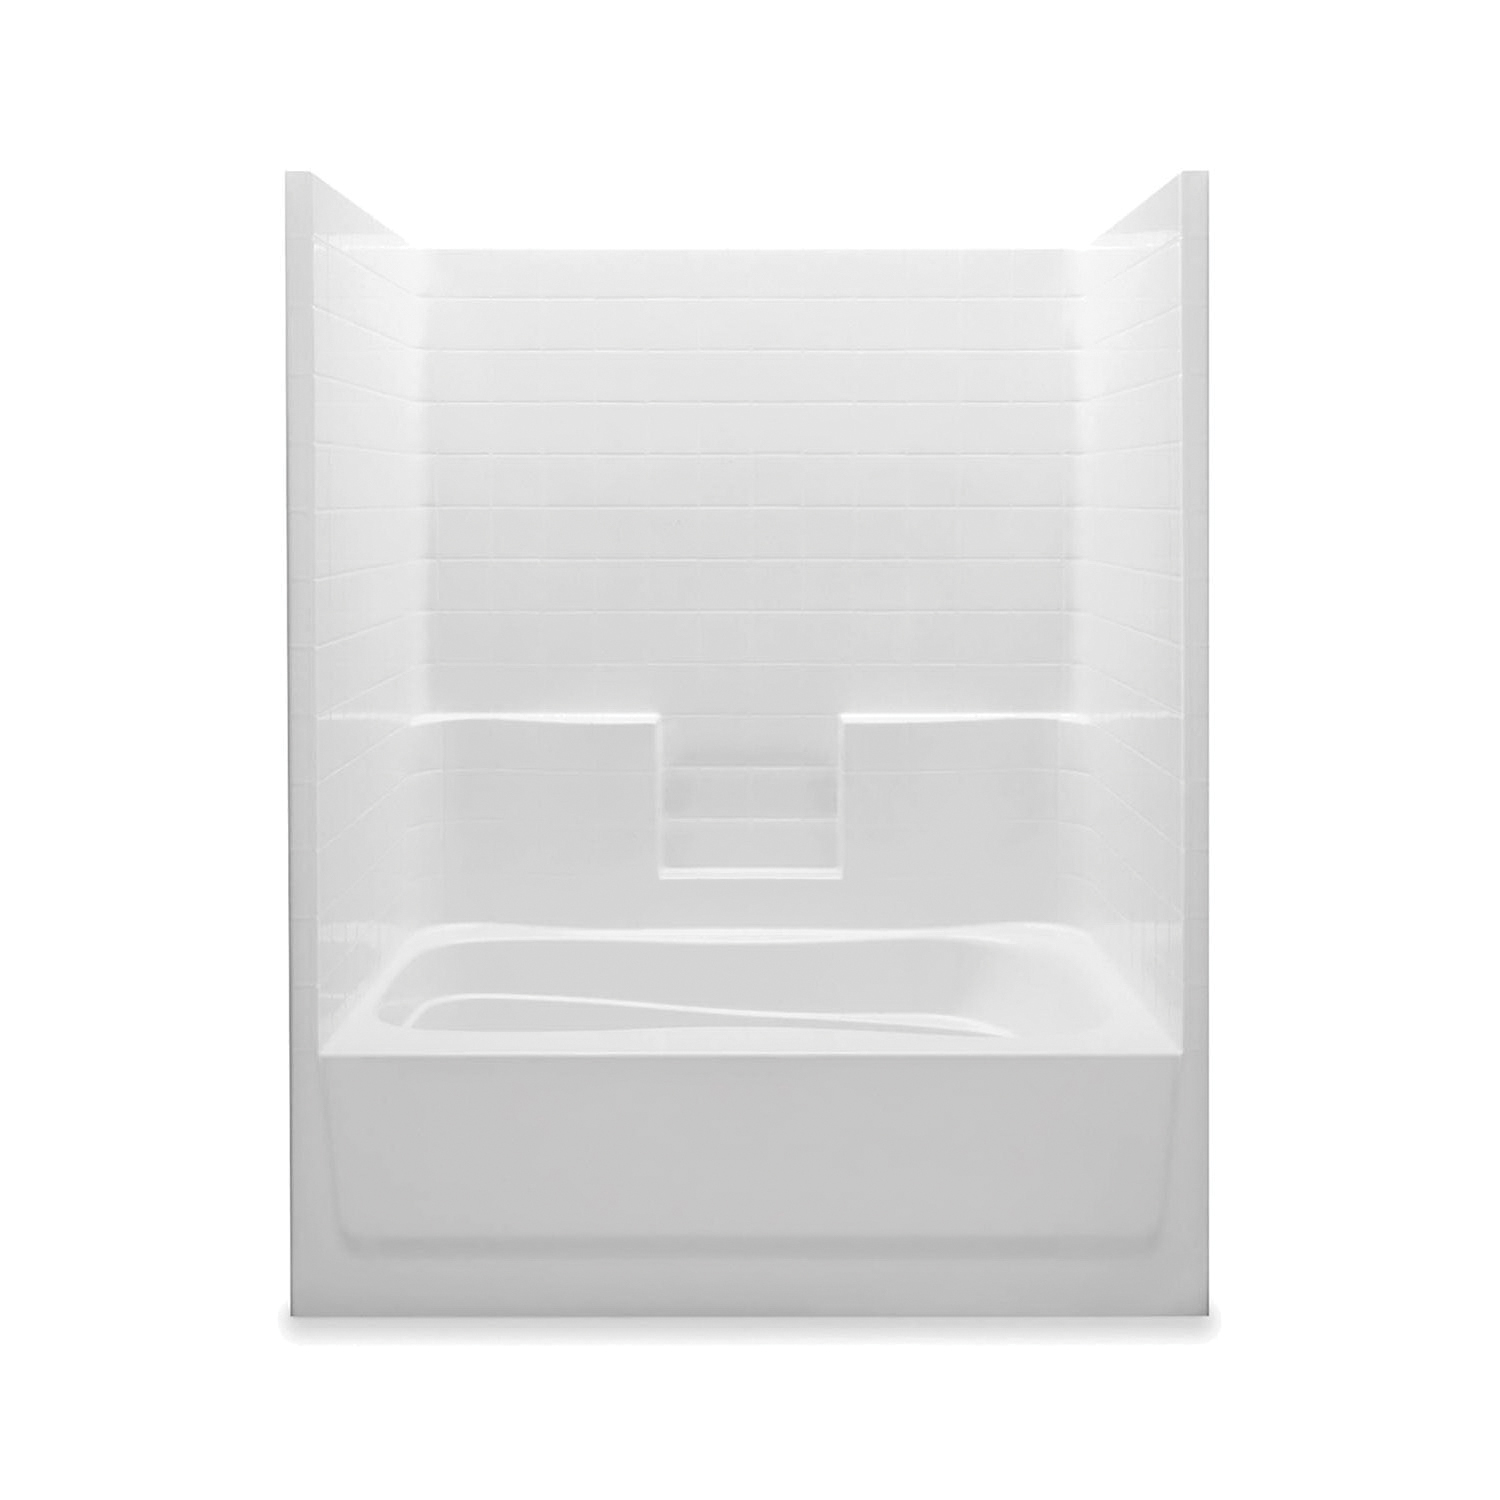 Aquatic 6042STR-WH Tub Shower, Everyday, 60 in W x 74 in H, Gel-Coated/White, Domestic